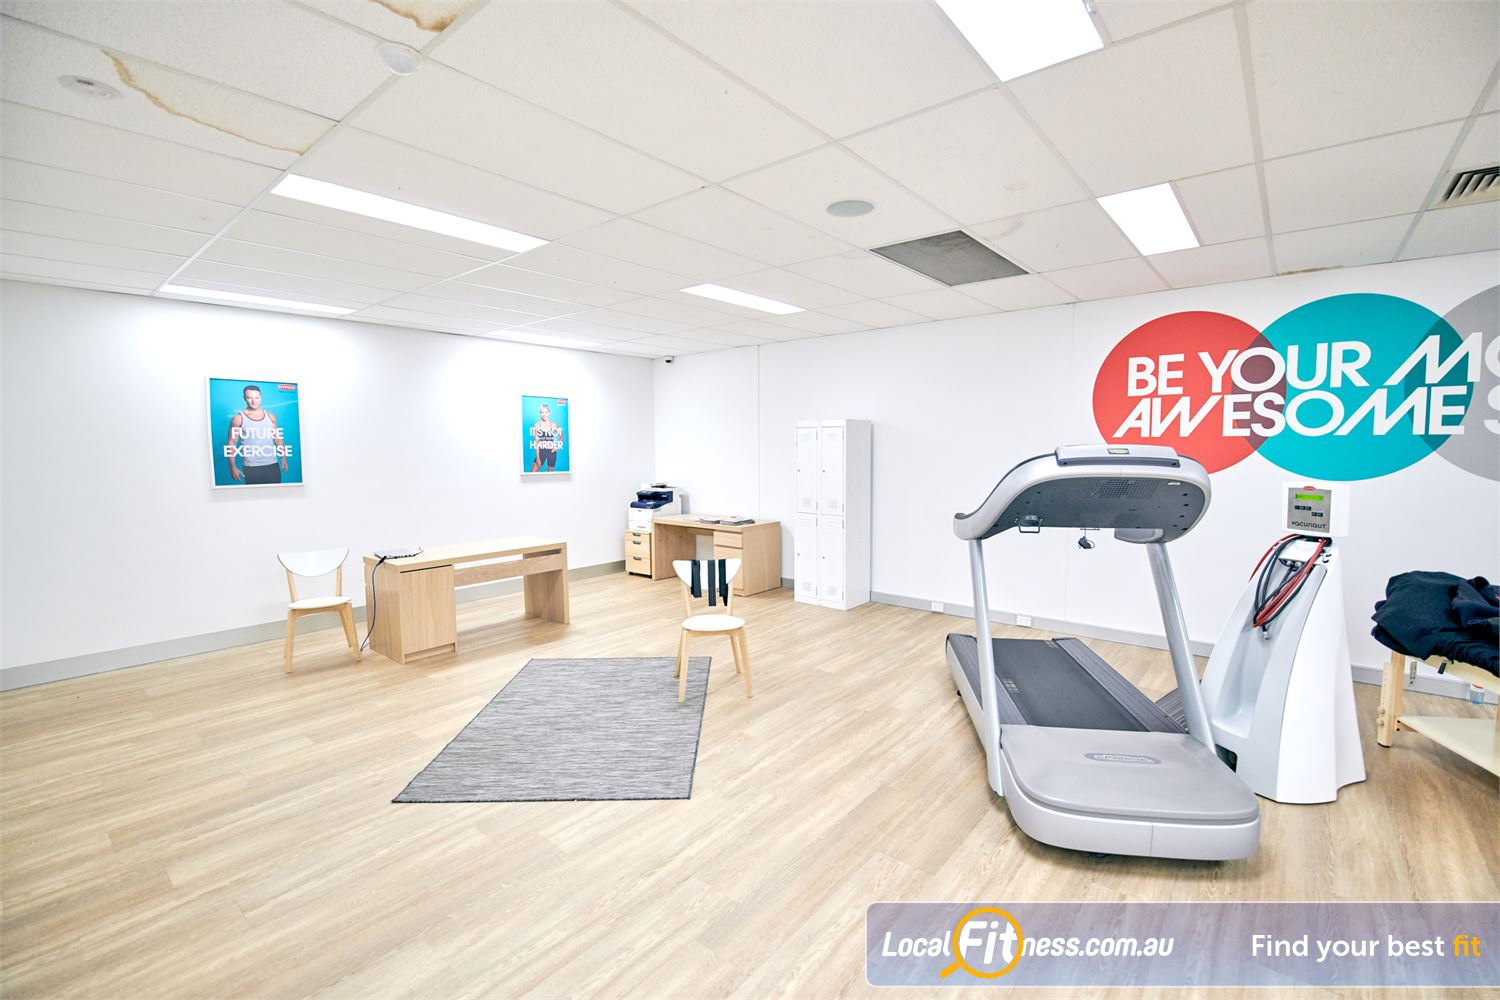 HYPOXI Weight Loss Port Melbourne Welcome to the HYPOXI Port Melbourne weight-loss studio.